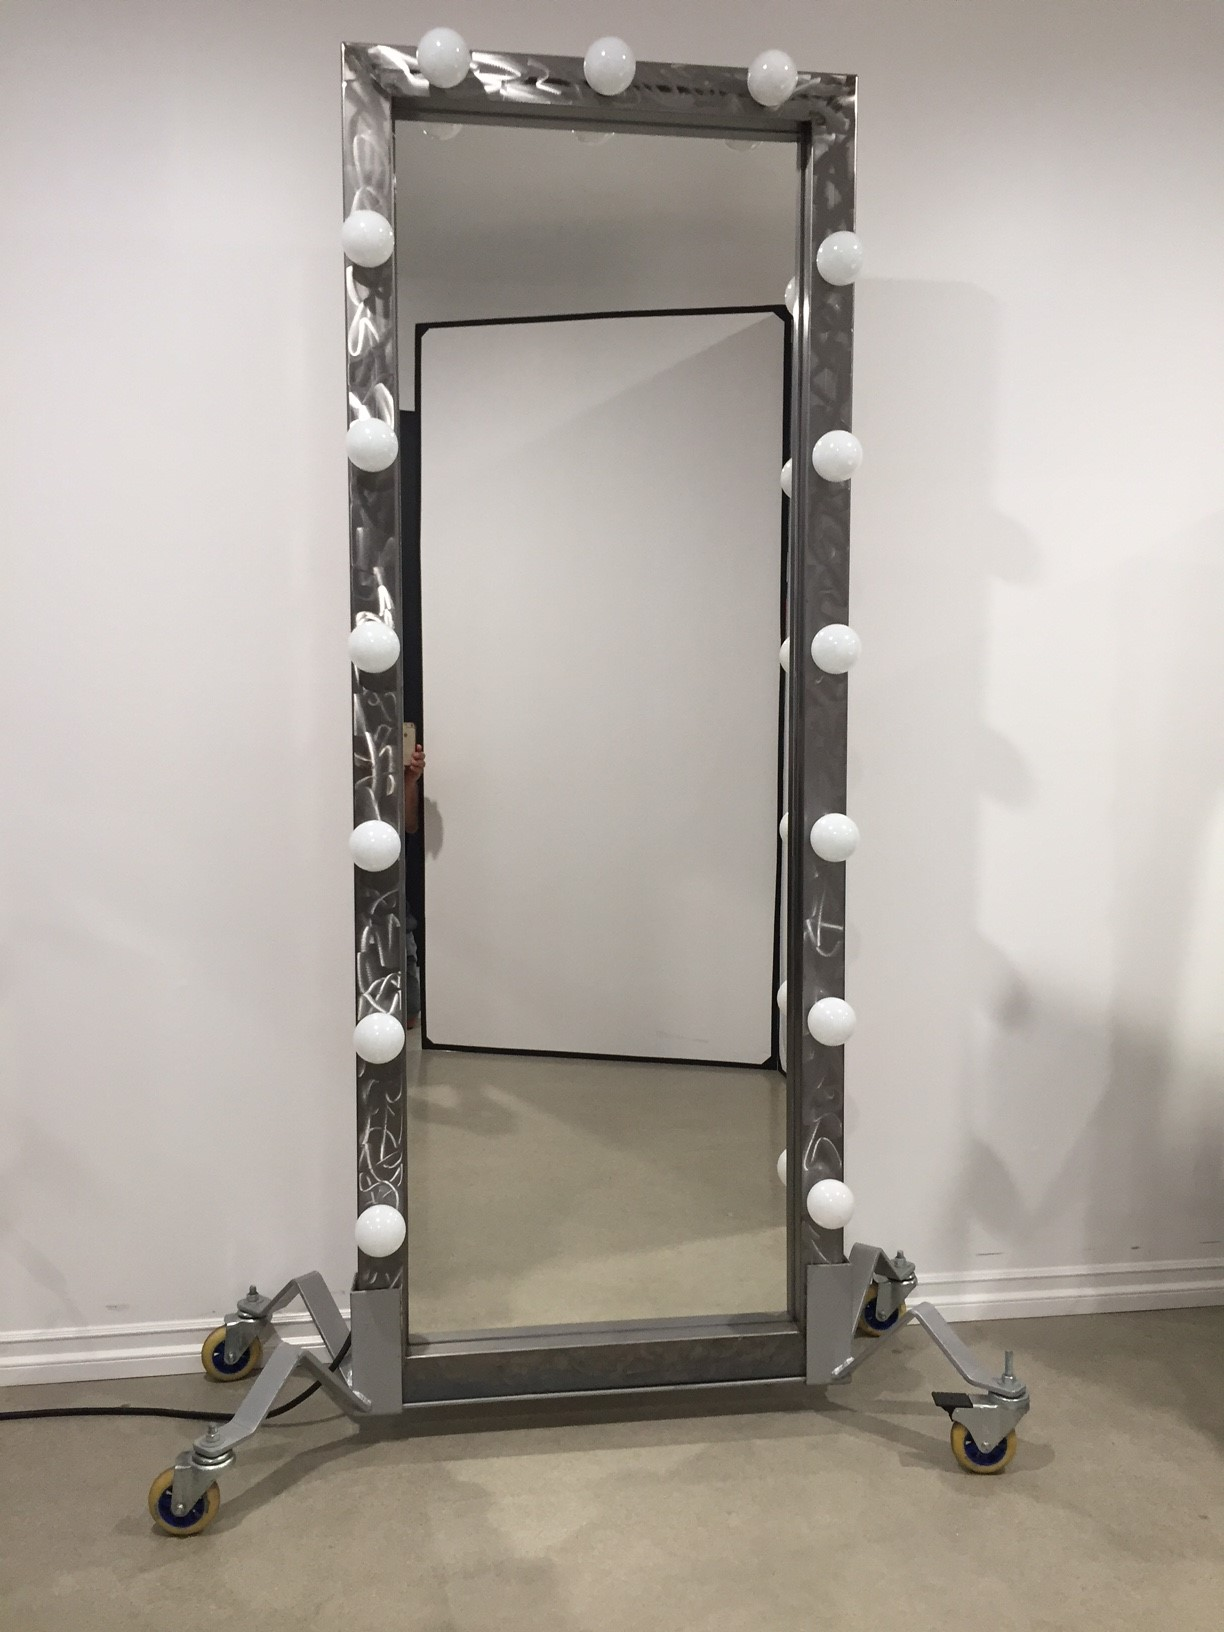 Premiere lighted full-length mirror